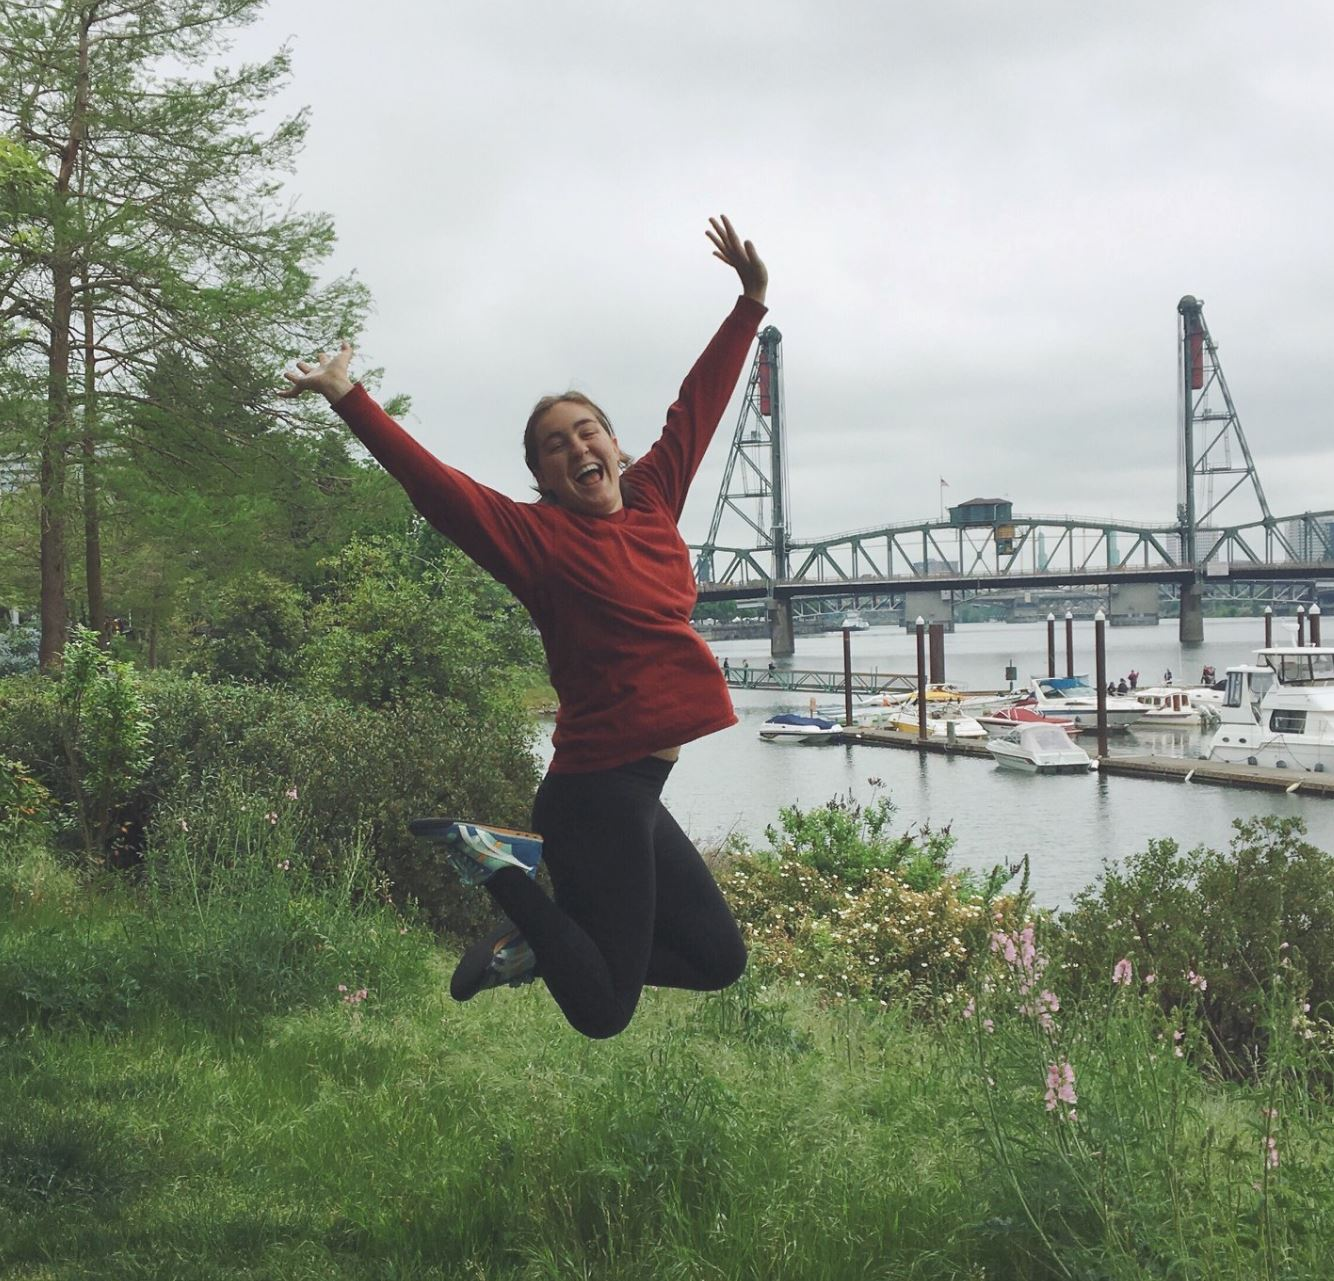 Photo of me jumping with joy in Portland, OR the day I found out I got accepted to the Peace Corps